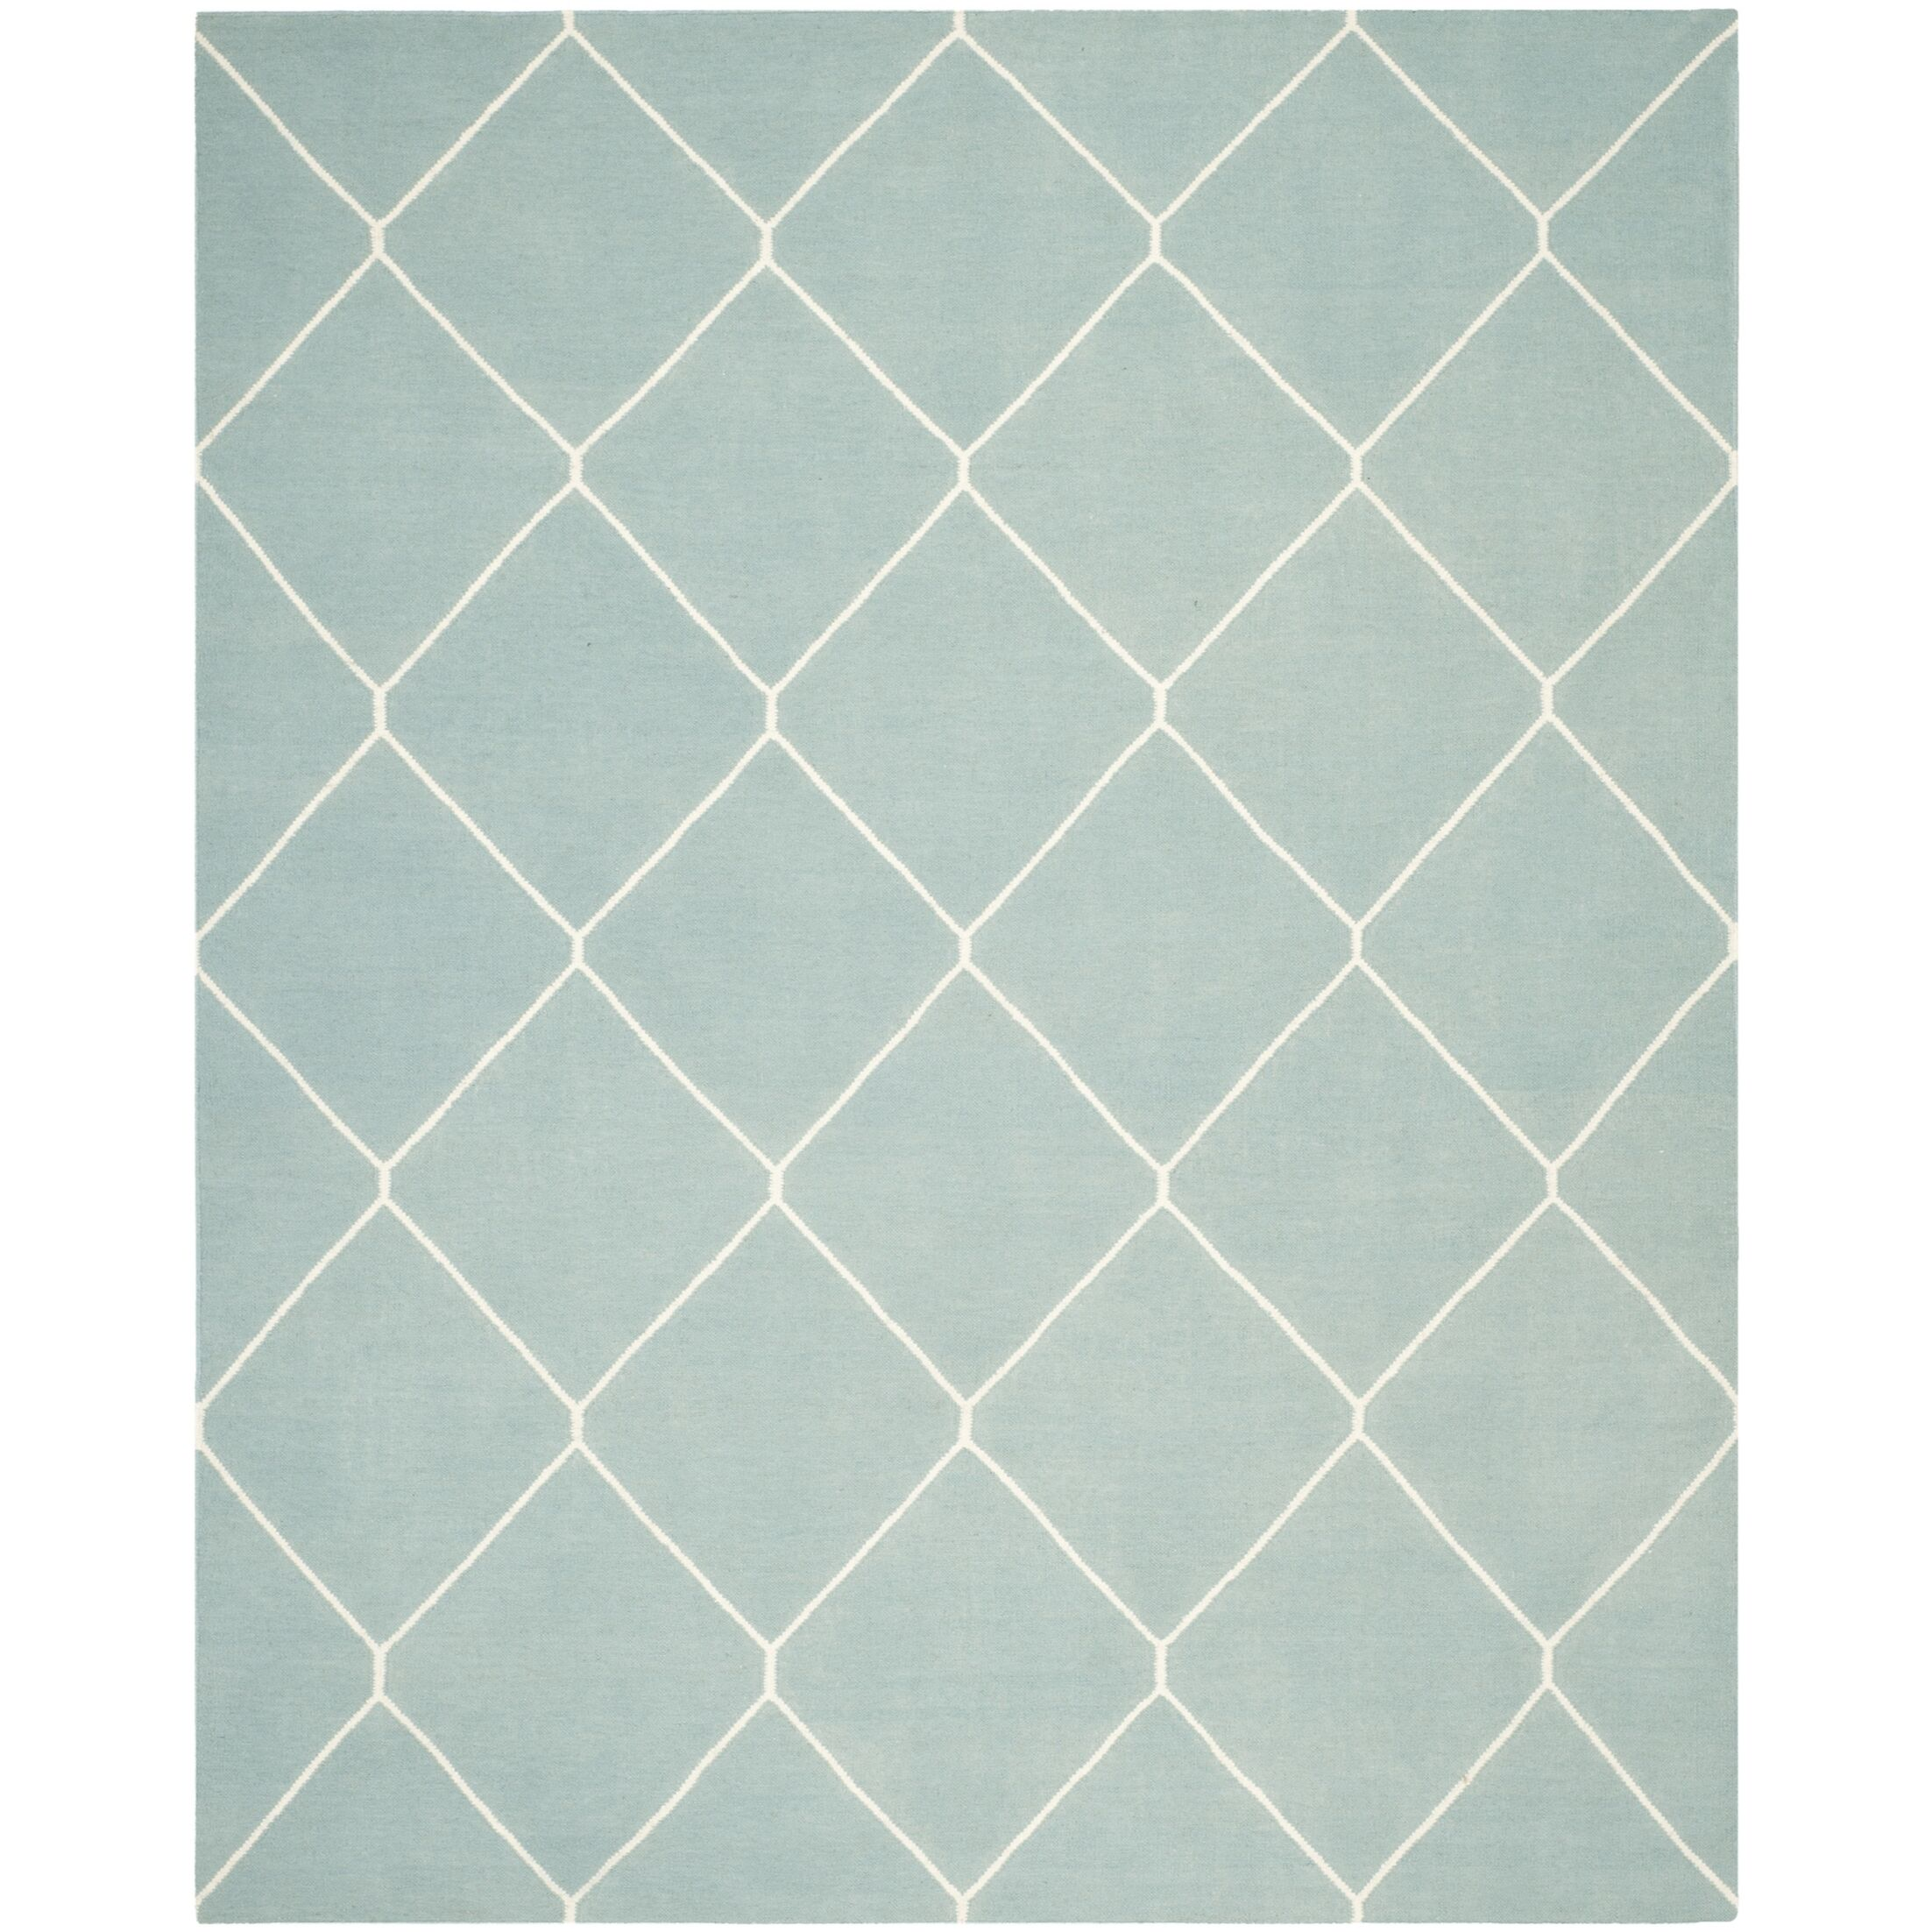 Dhurries Light Blue/Ivory Area Rug Rug Size: Rectangle 8' x 10'